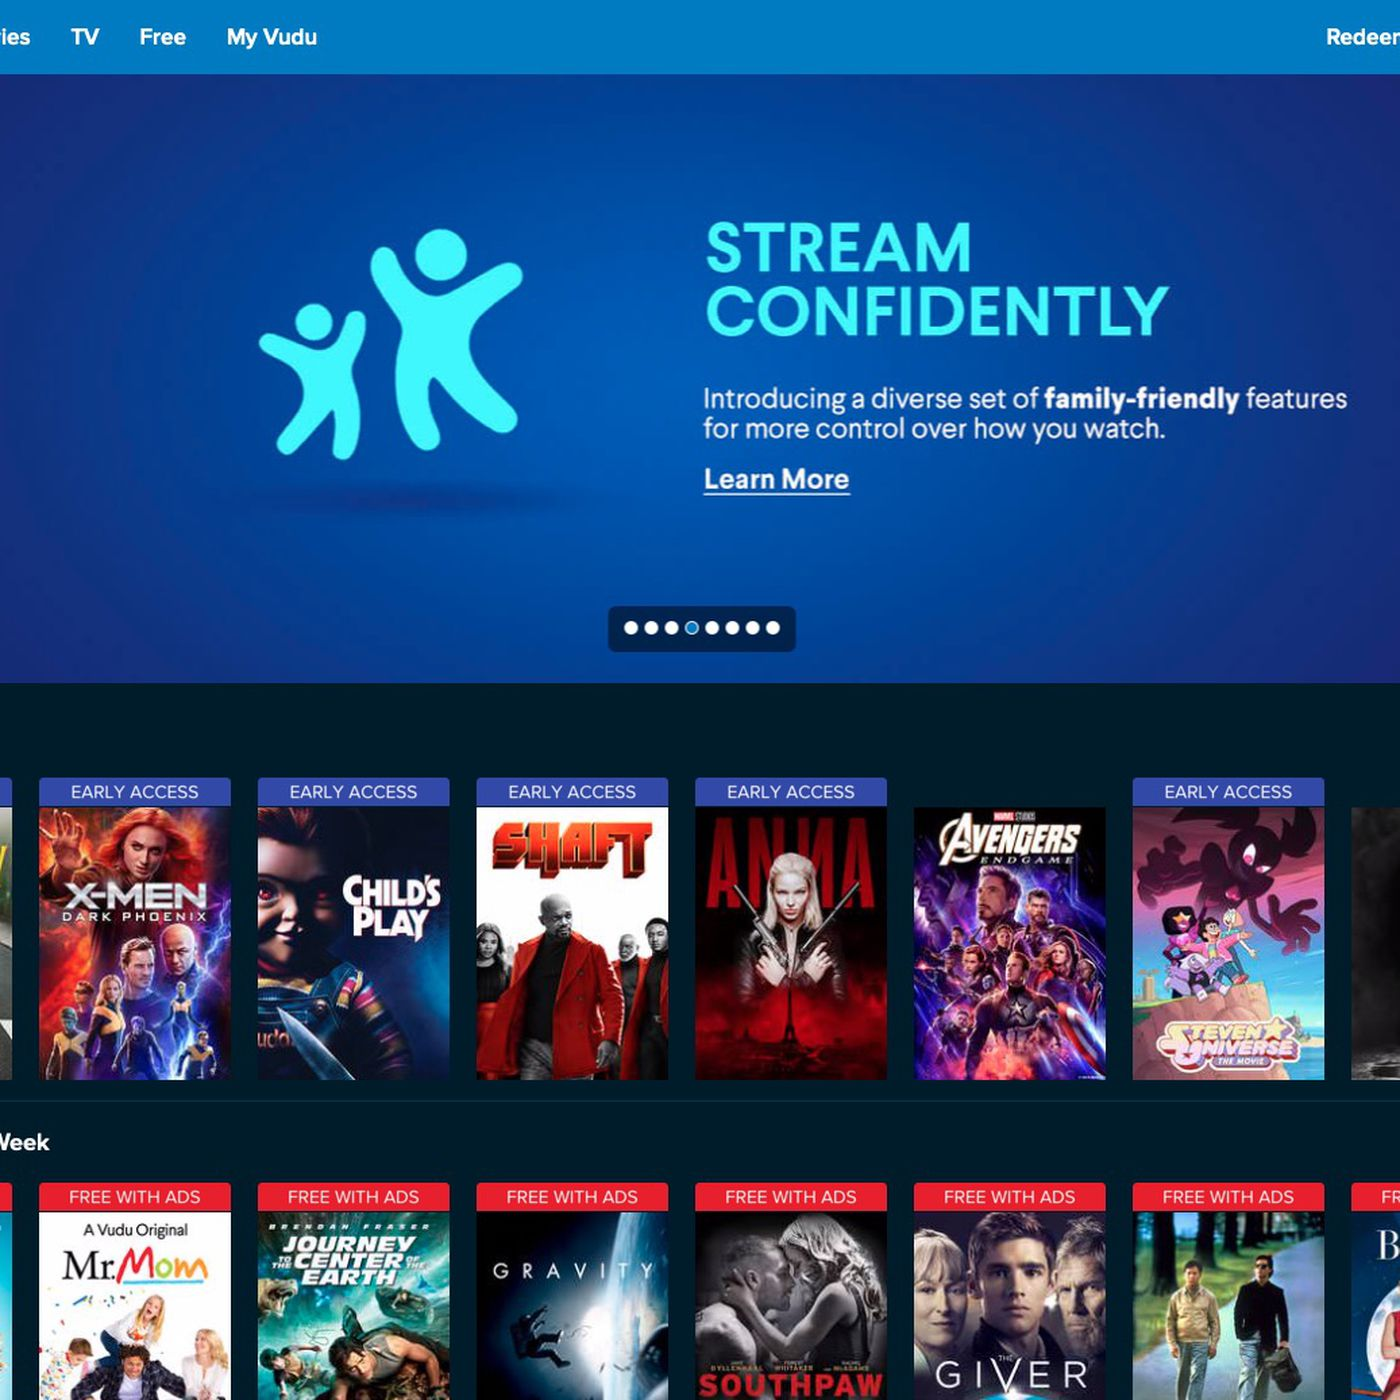 Free Sexy Short Movies vudu's new family play mode automatically skips sex